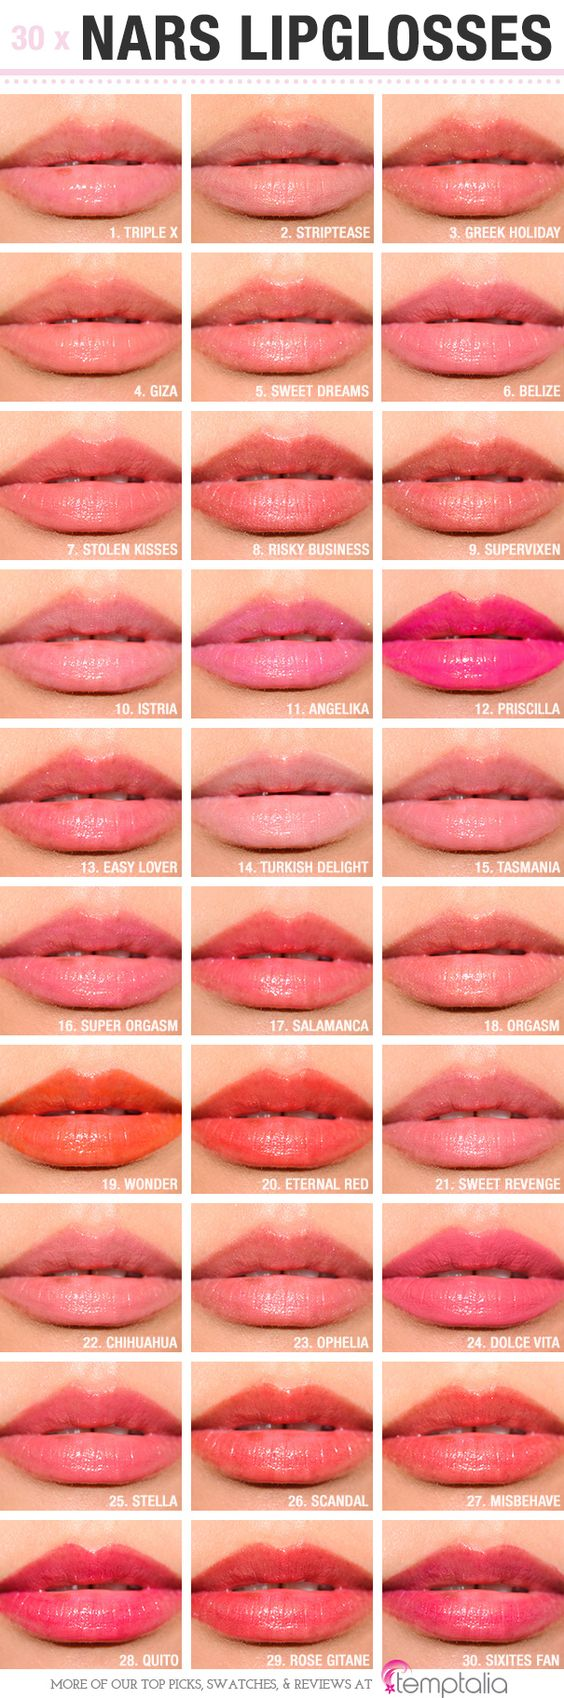 Sneak Peek: NARS Lipglosses Photos & Swatches | Swatch ...